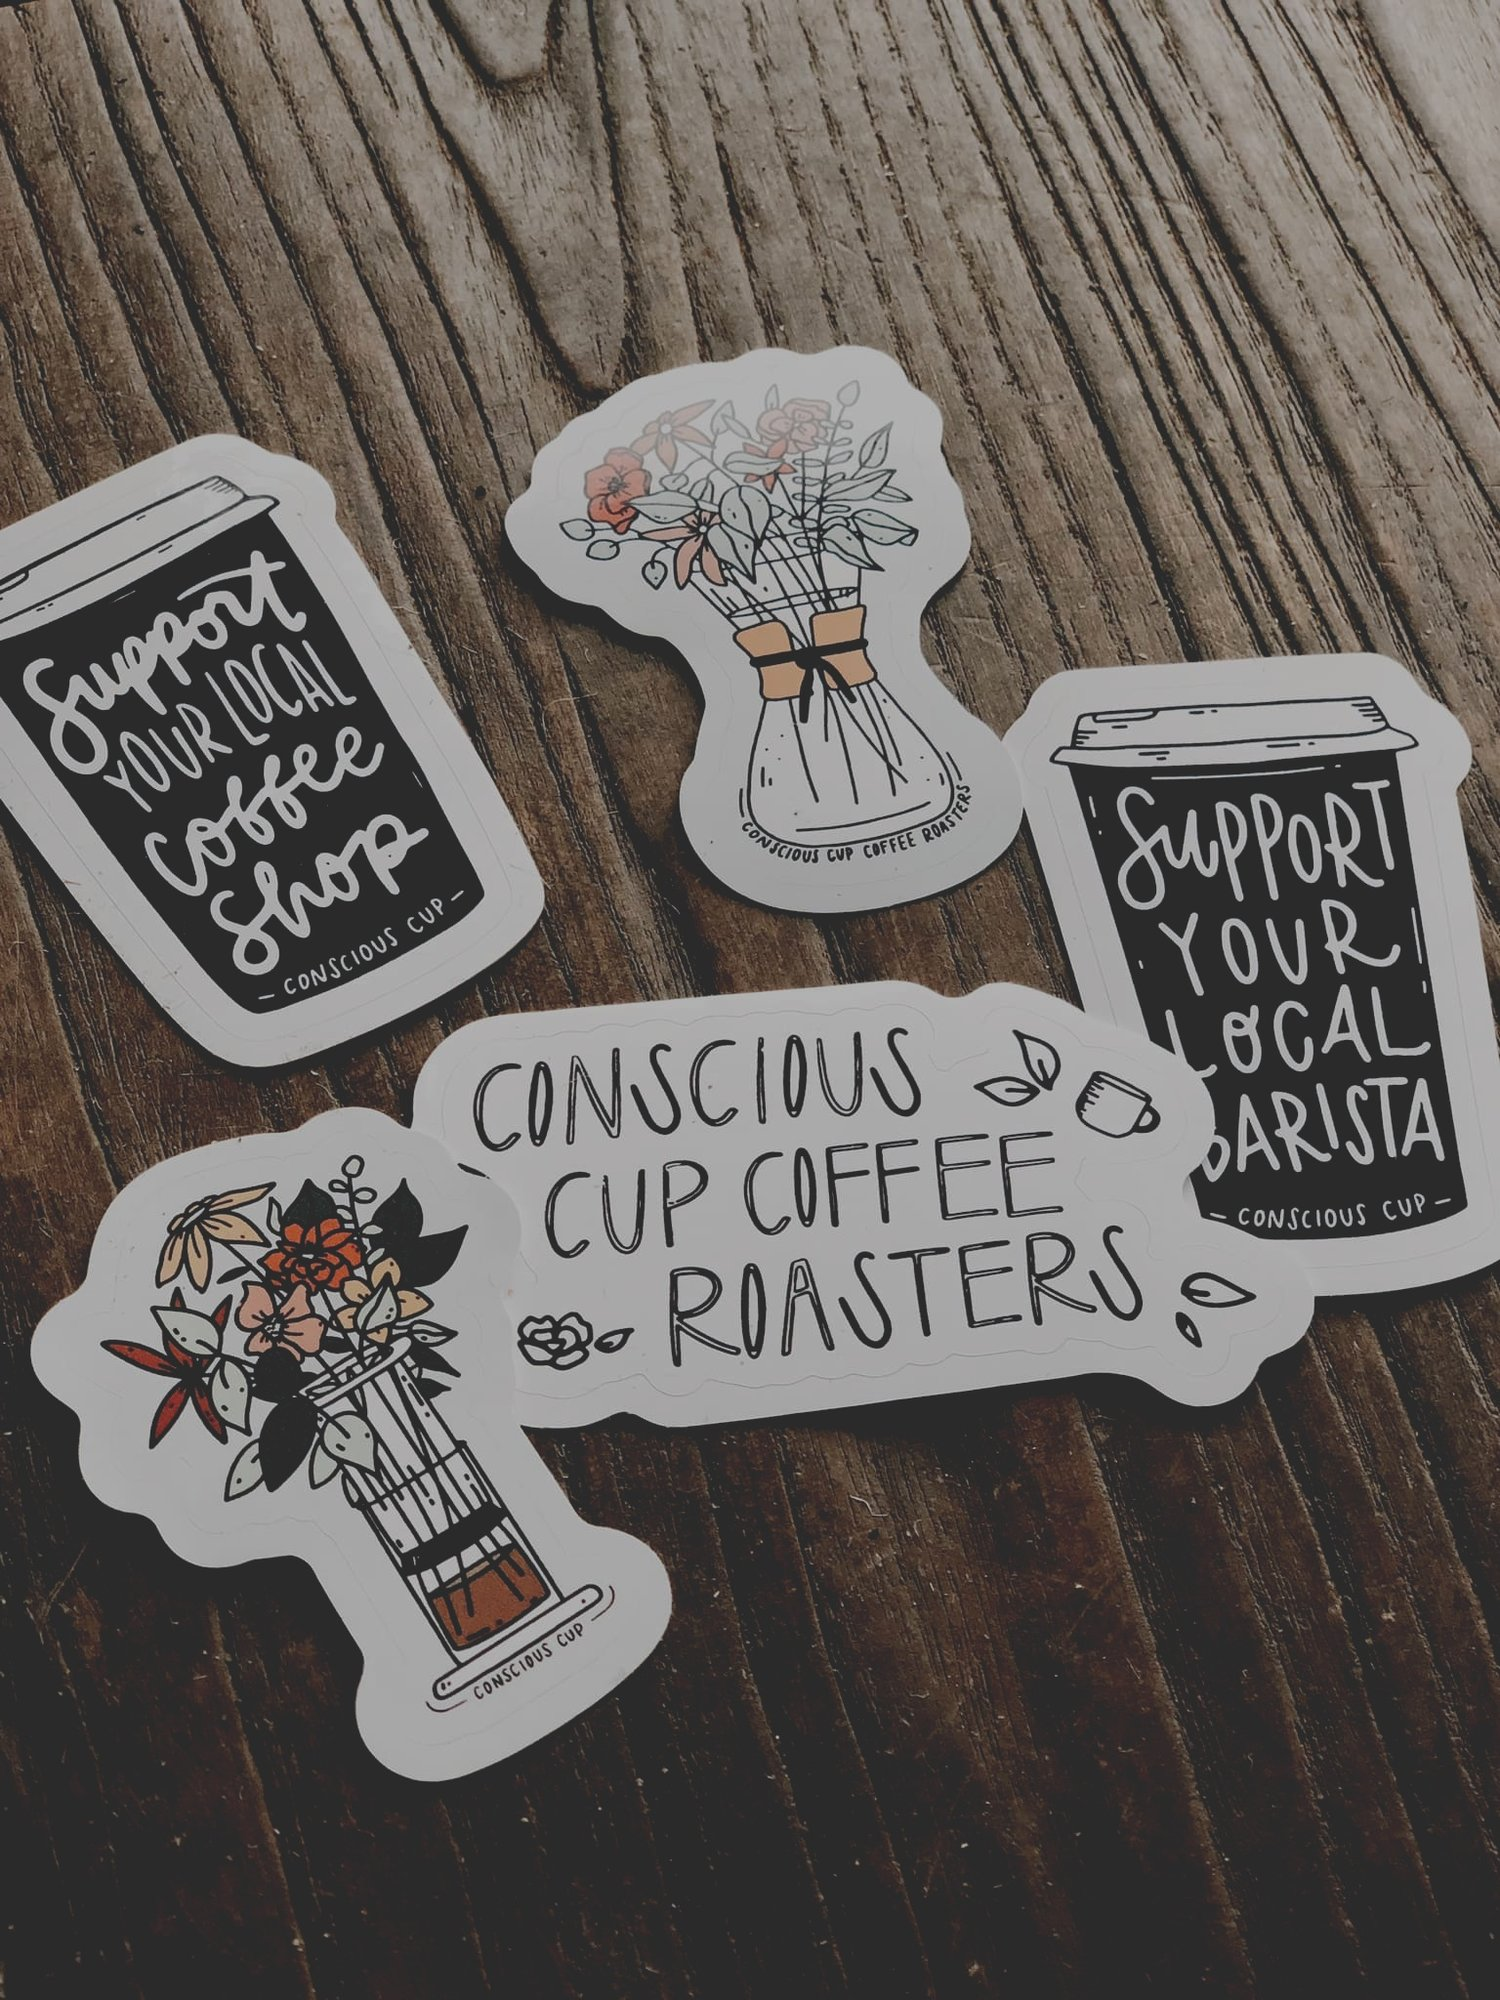 business sticker coffee cup packaging sticker 15 stickers per sheet. thanks for supporting my coffee addiction packaging sticker